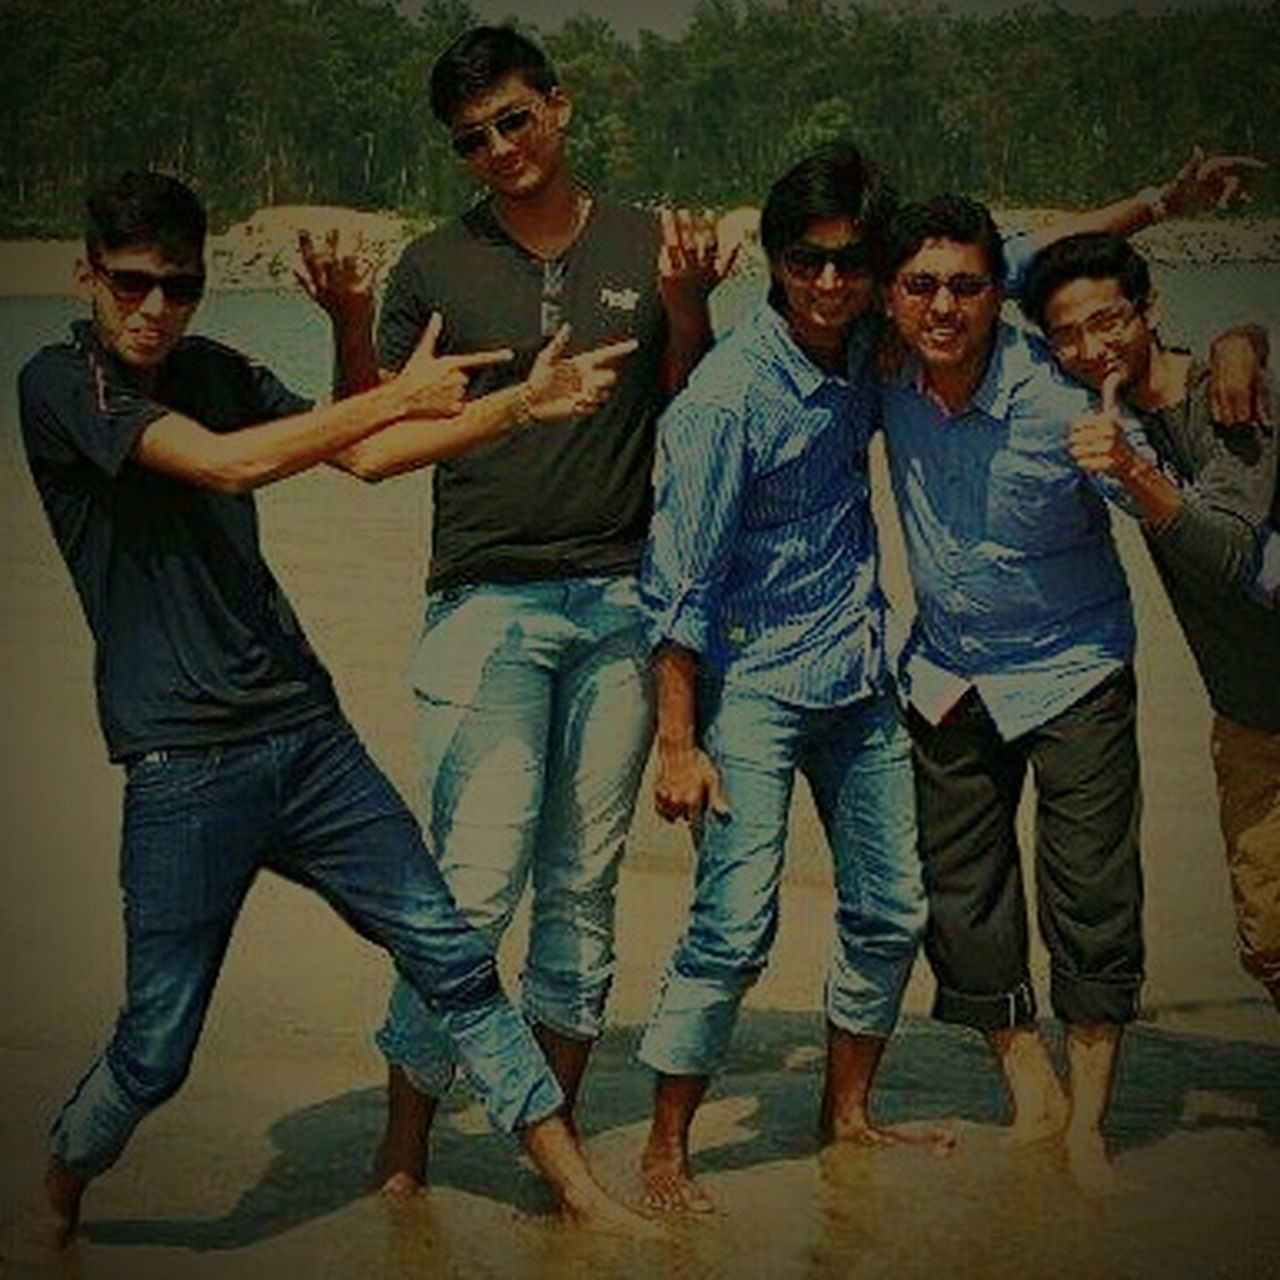 adult, friendship, casual clothing, fun, adults only, people, young adult, full length, mature adult, young men, togetherness, standing, men, leisure activity, smiling, portrait, looking at camera, happiness, outdoors, day, tree, only men, young women, real people, nature